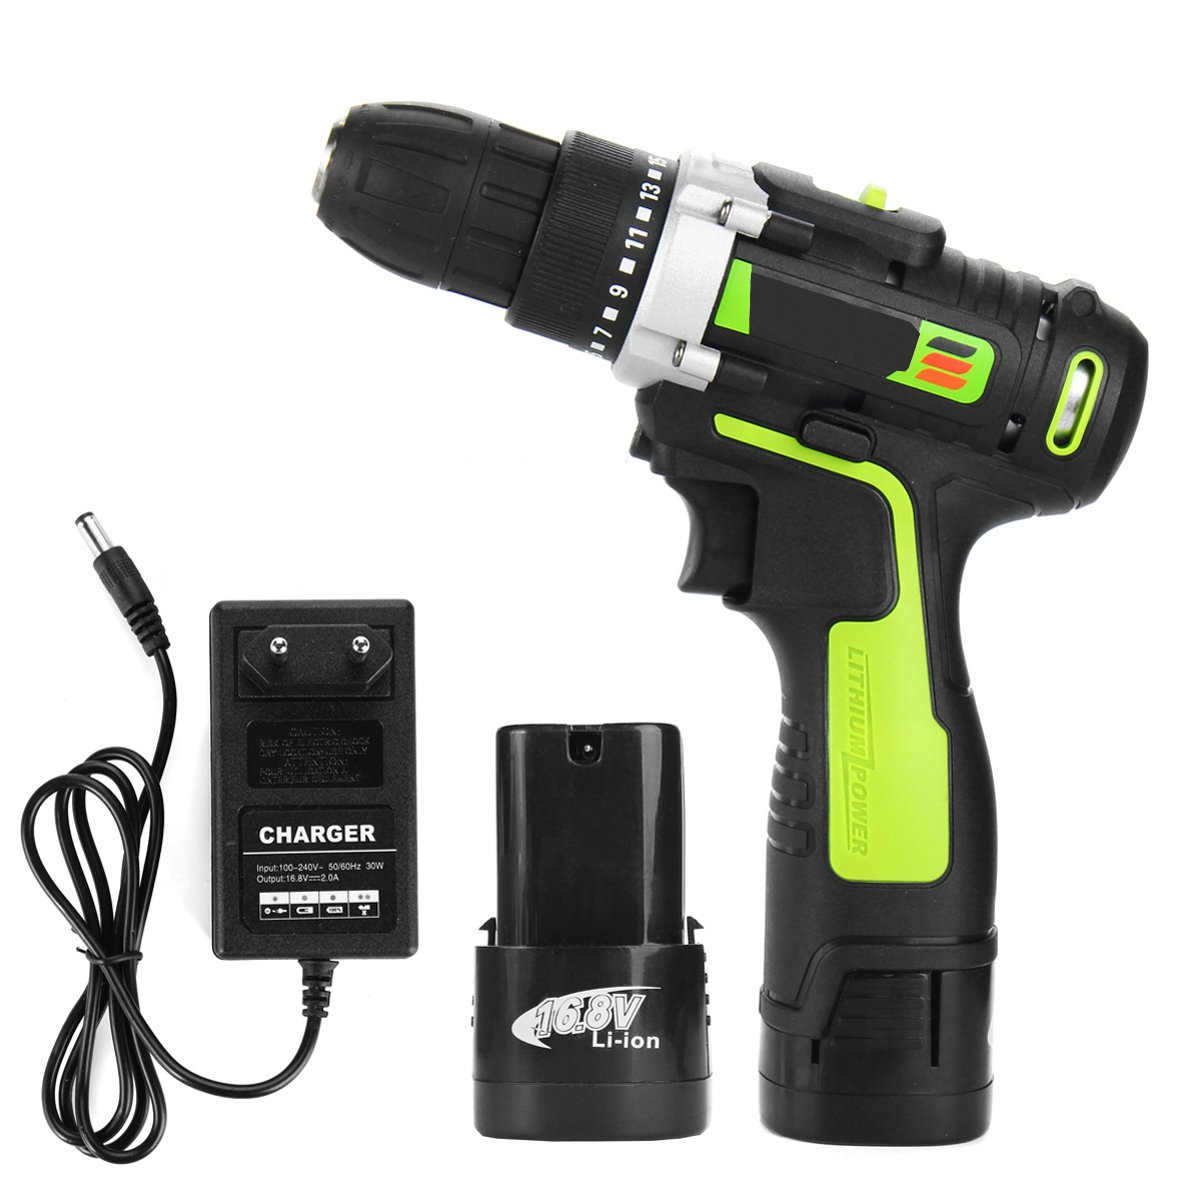 цена на 16.8v New Two Speed Rechargeable Lithium Battery Household mini Hand Cordless Drill Electricity driver Electric screwdriver